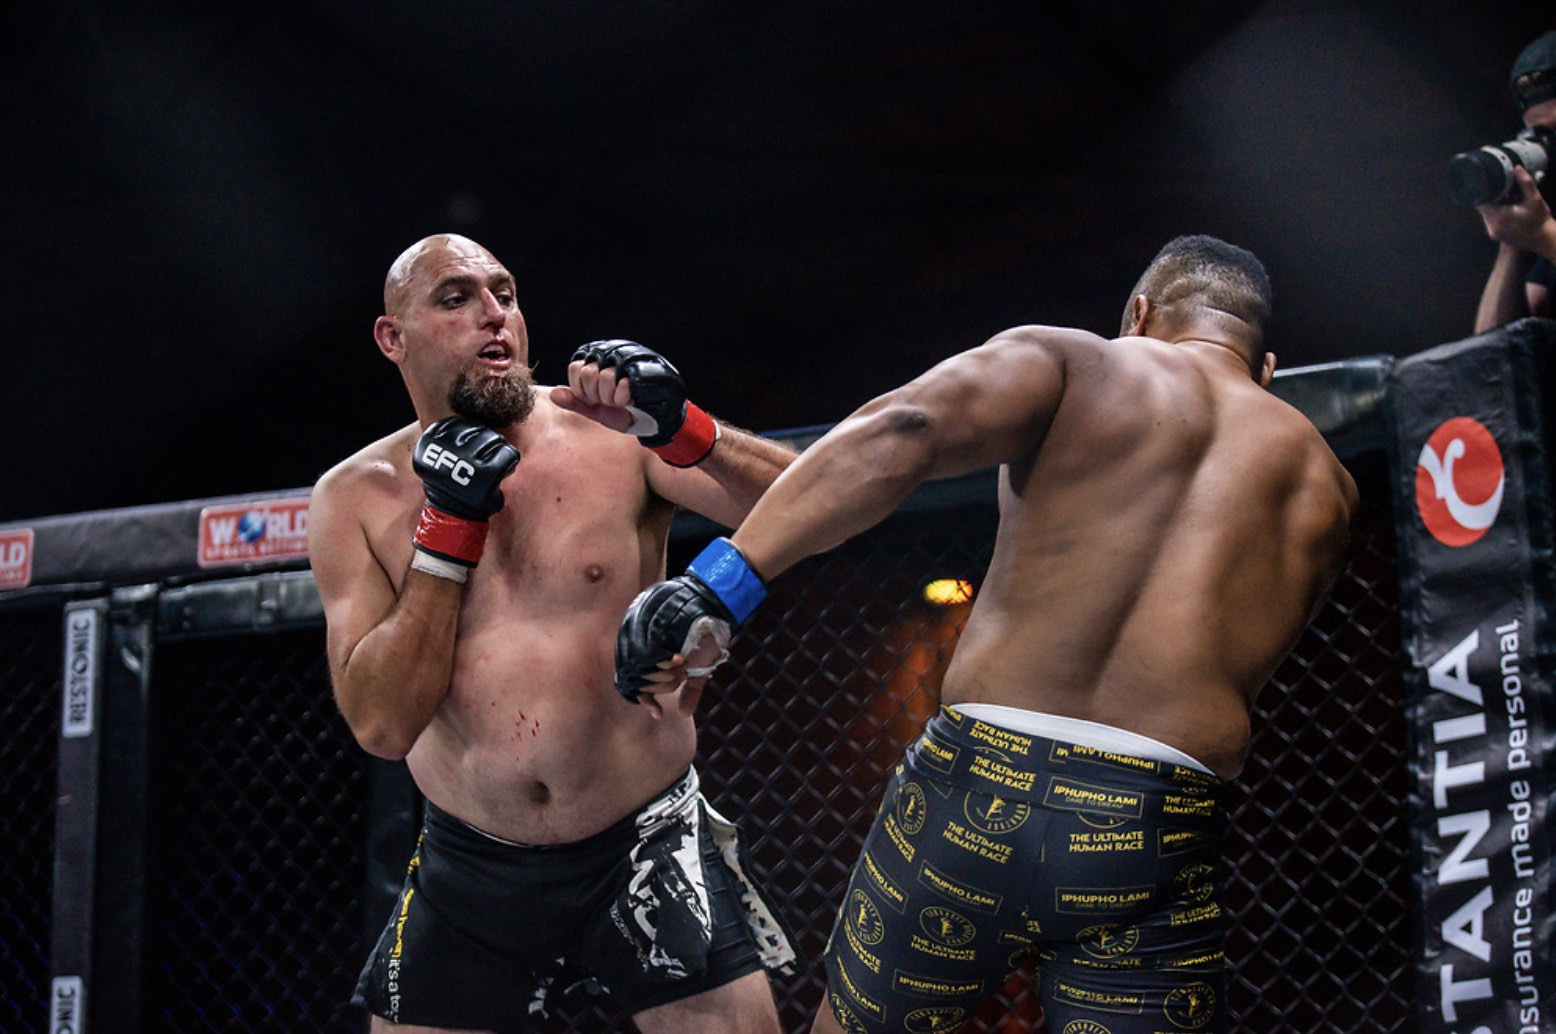 Results from all 11 MMA fight at EFC 87